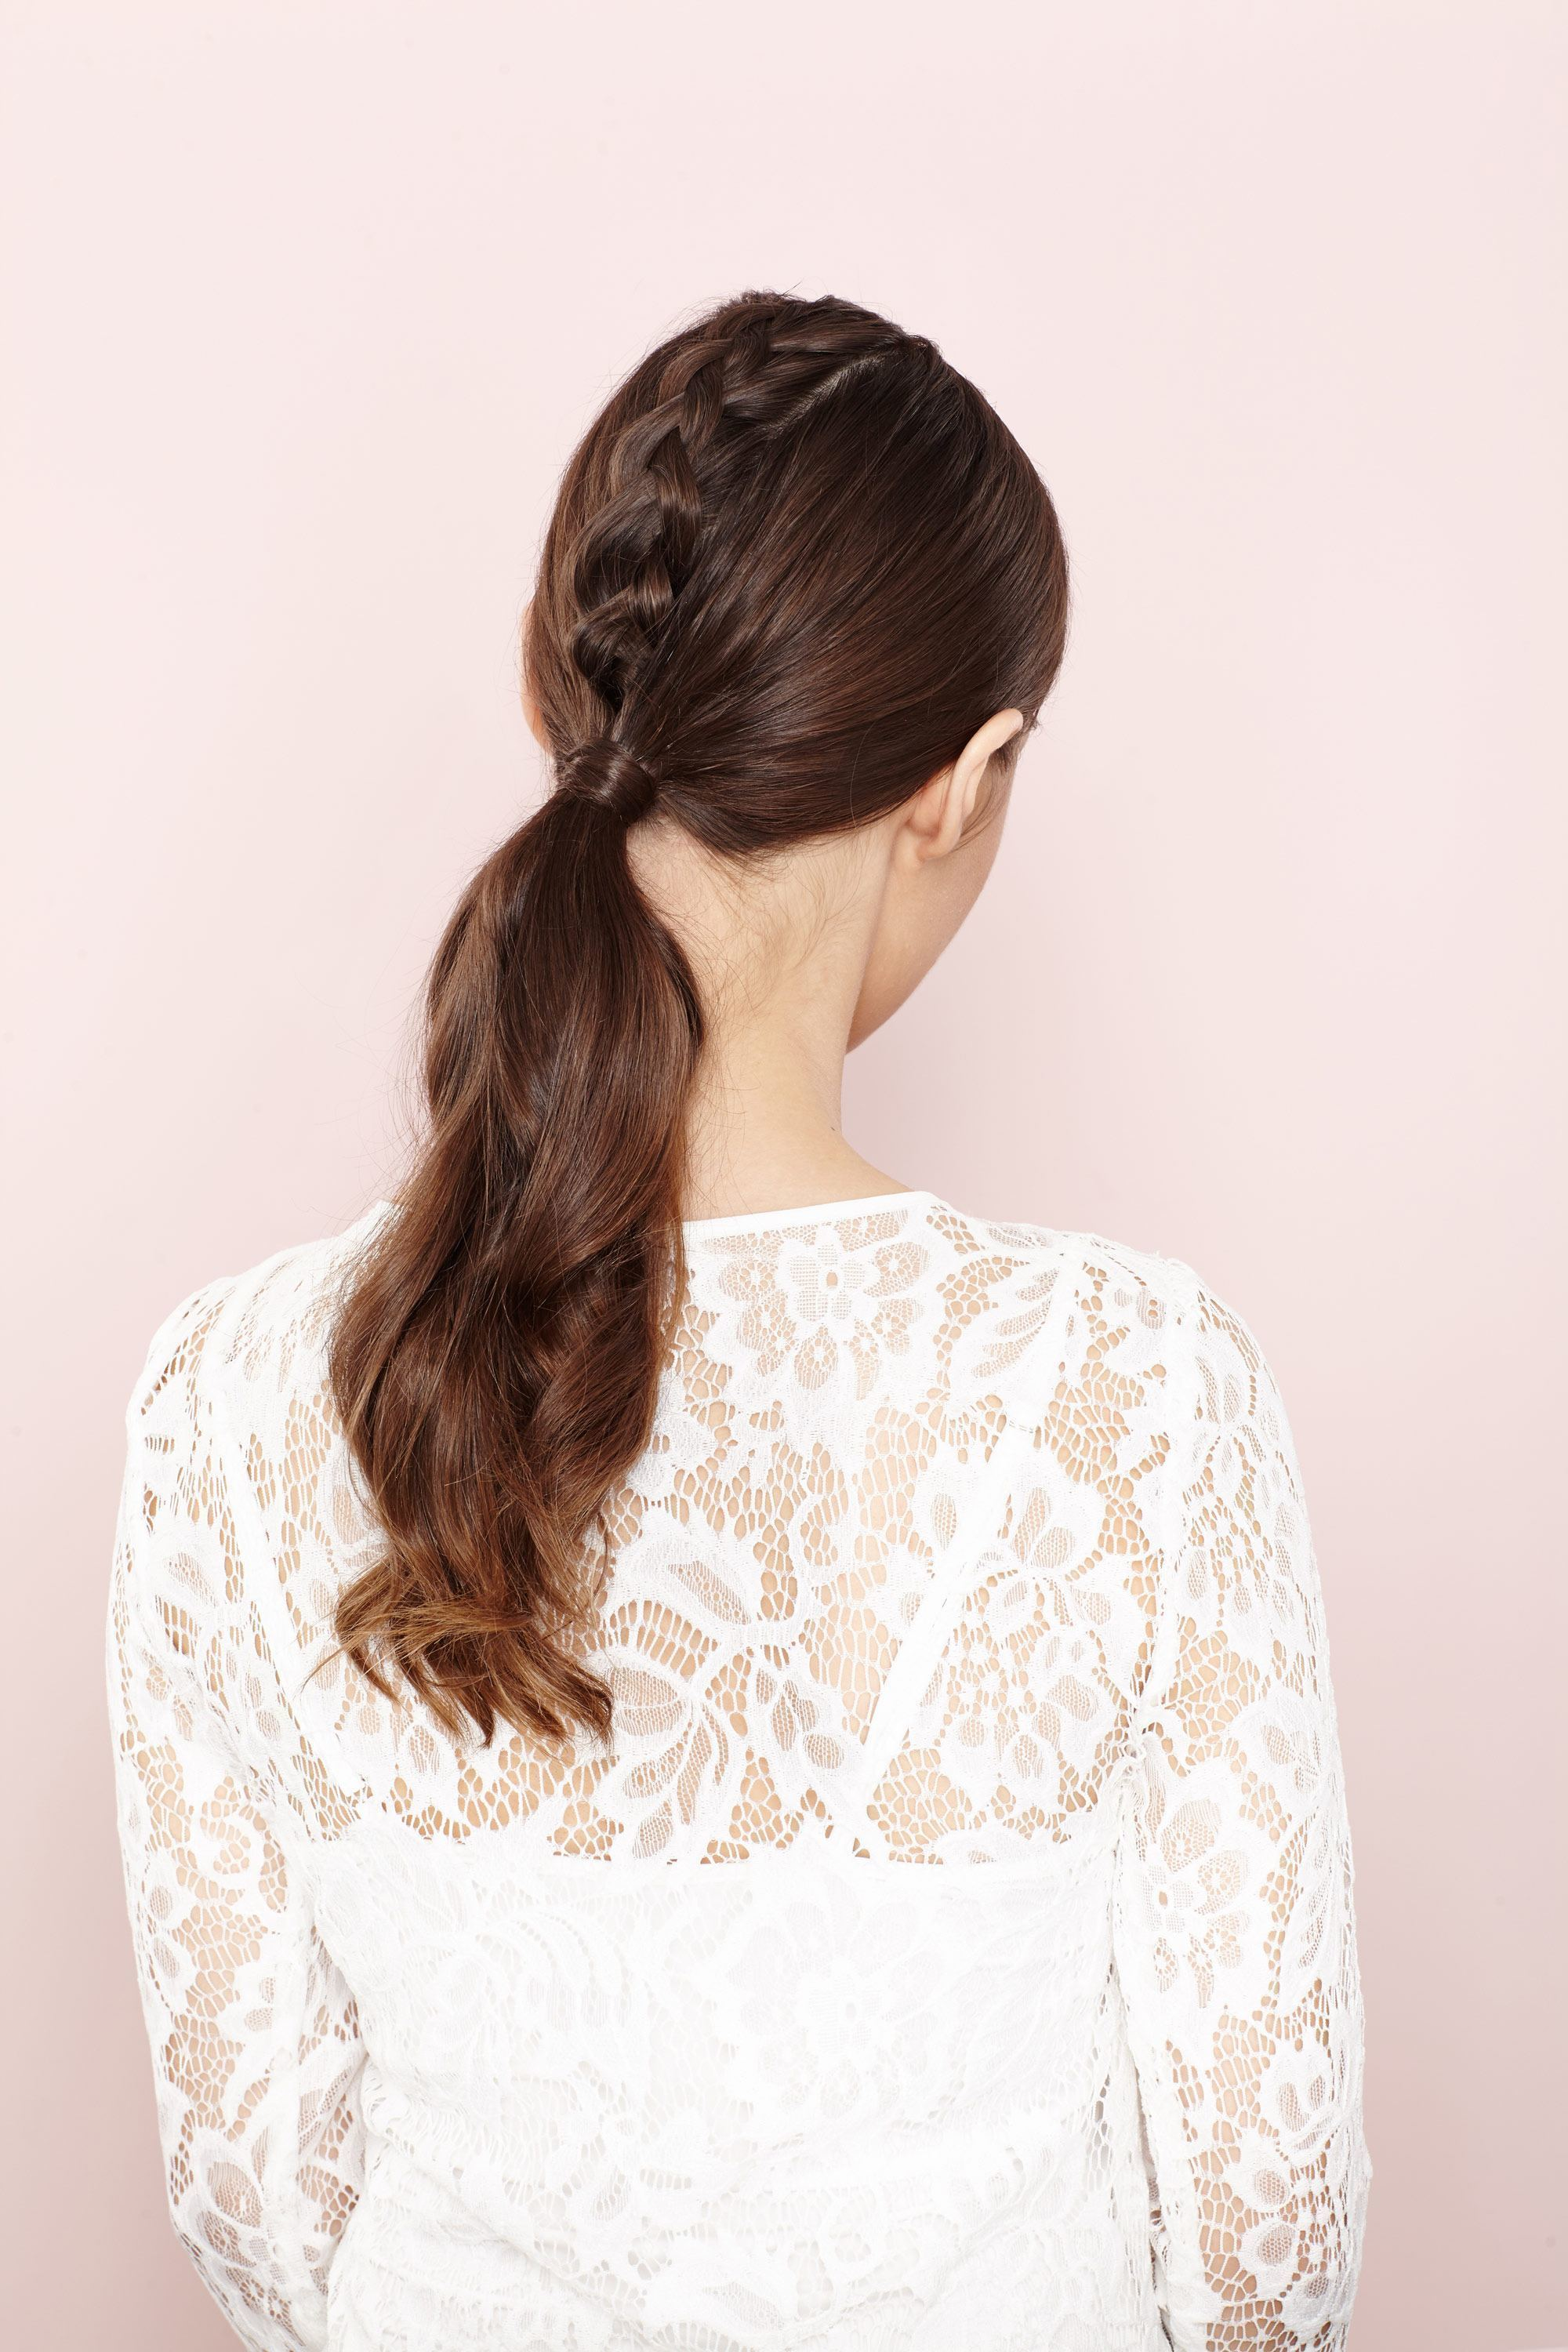 After-party hairstyles include chic unicorn braid ponytails